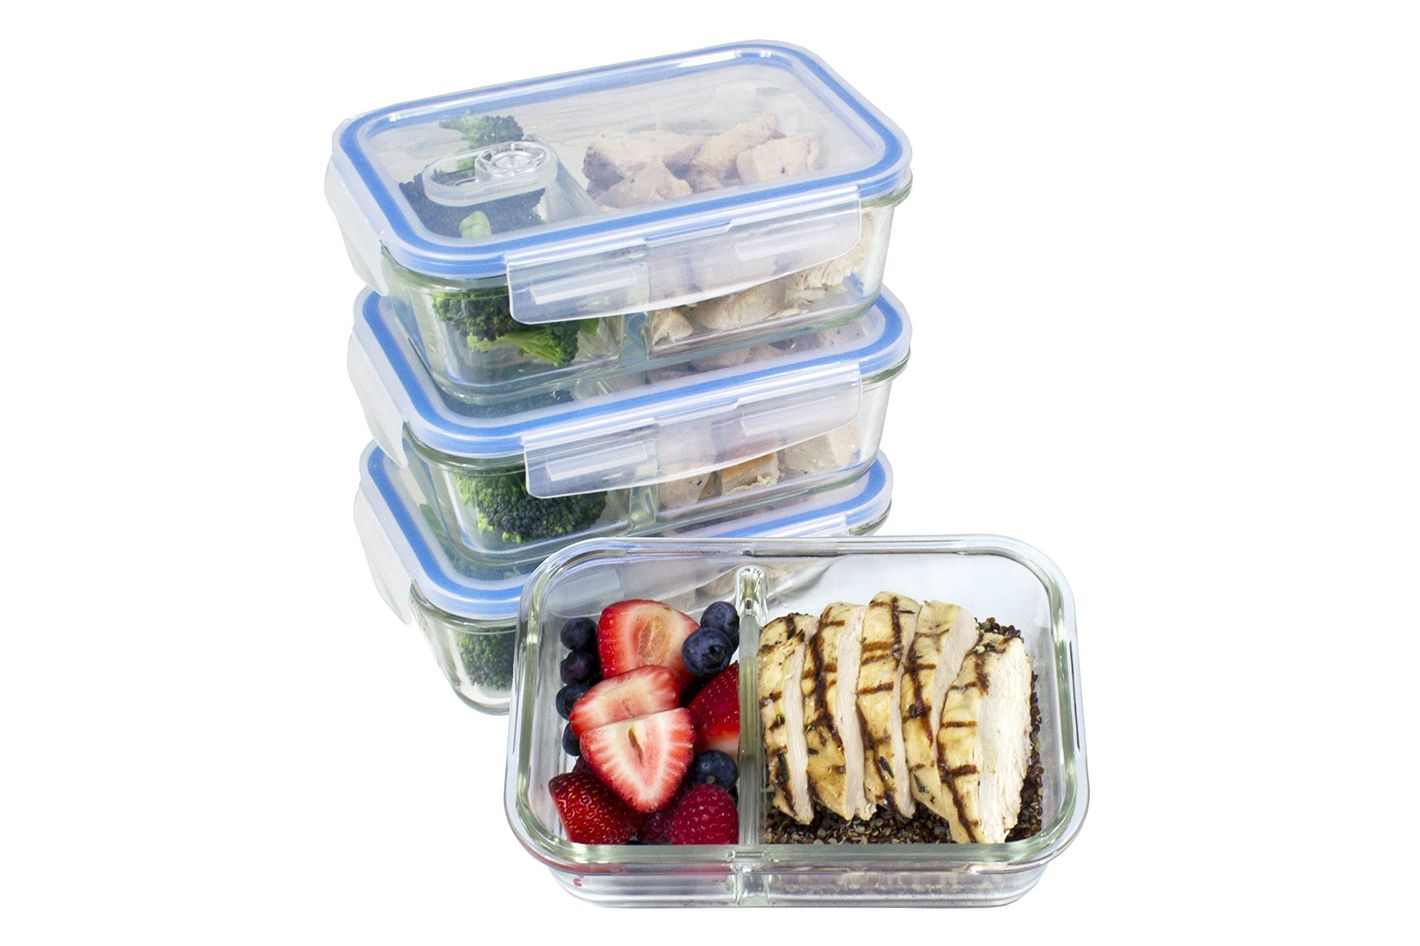 Misc Home 2 Compartment Glass Meal Prep Containers